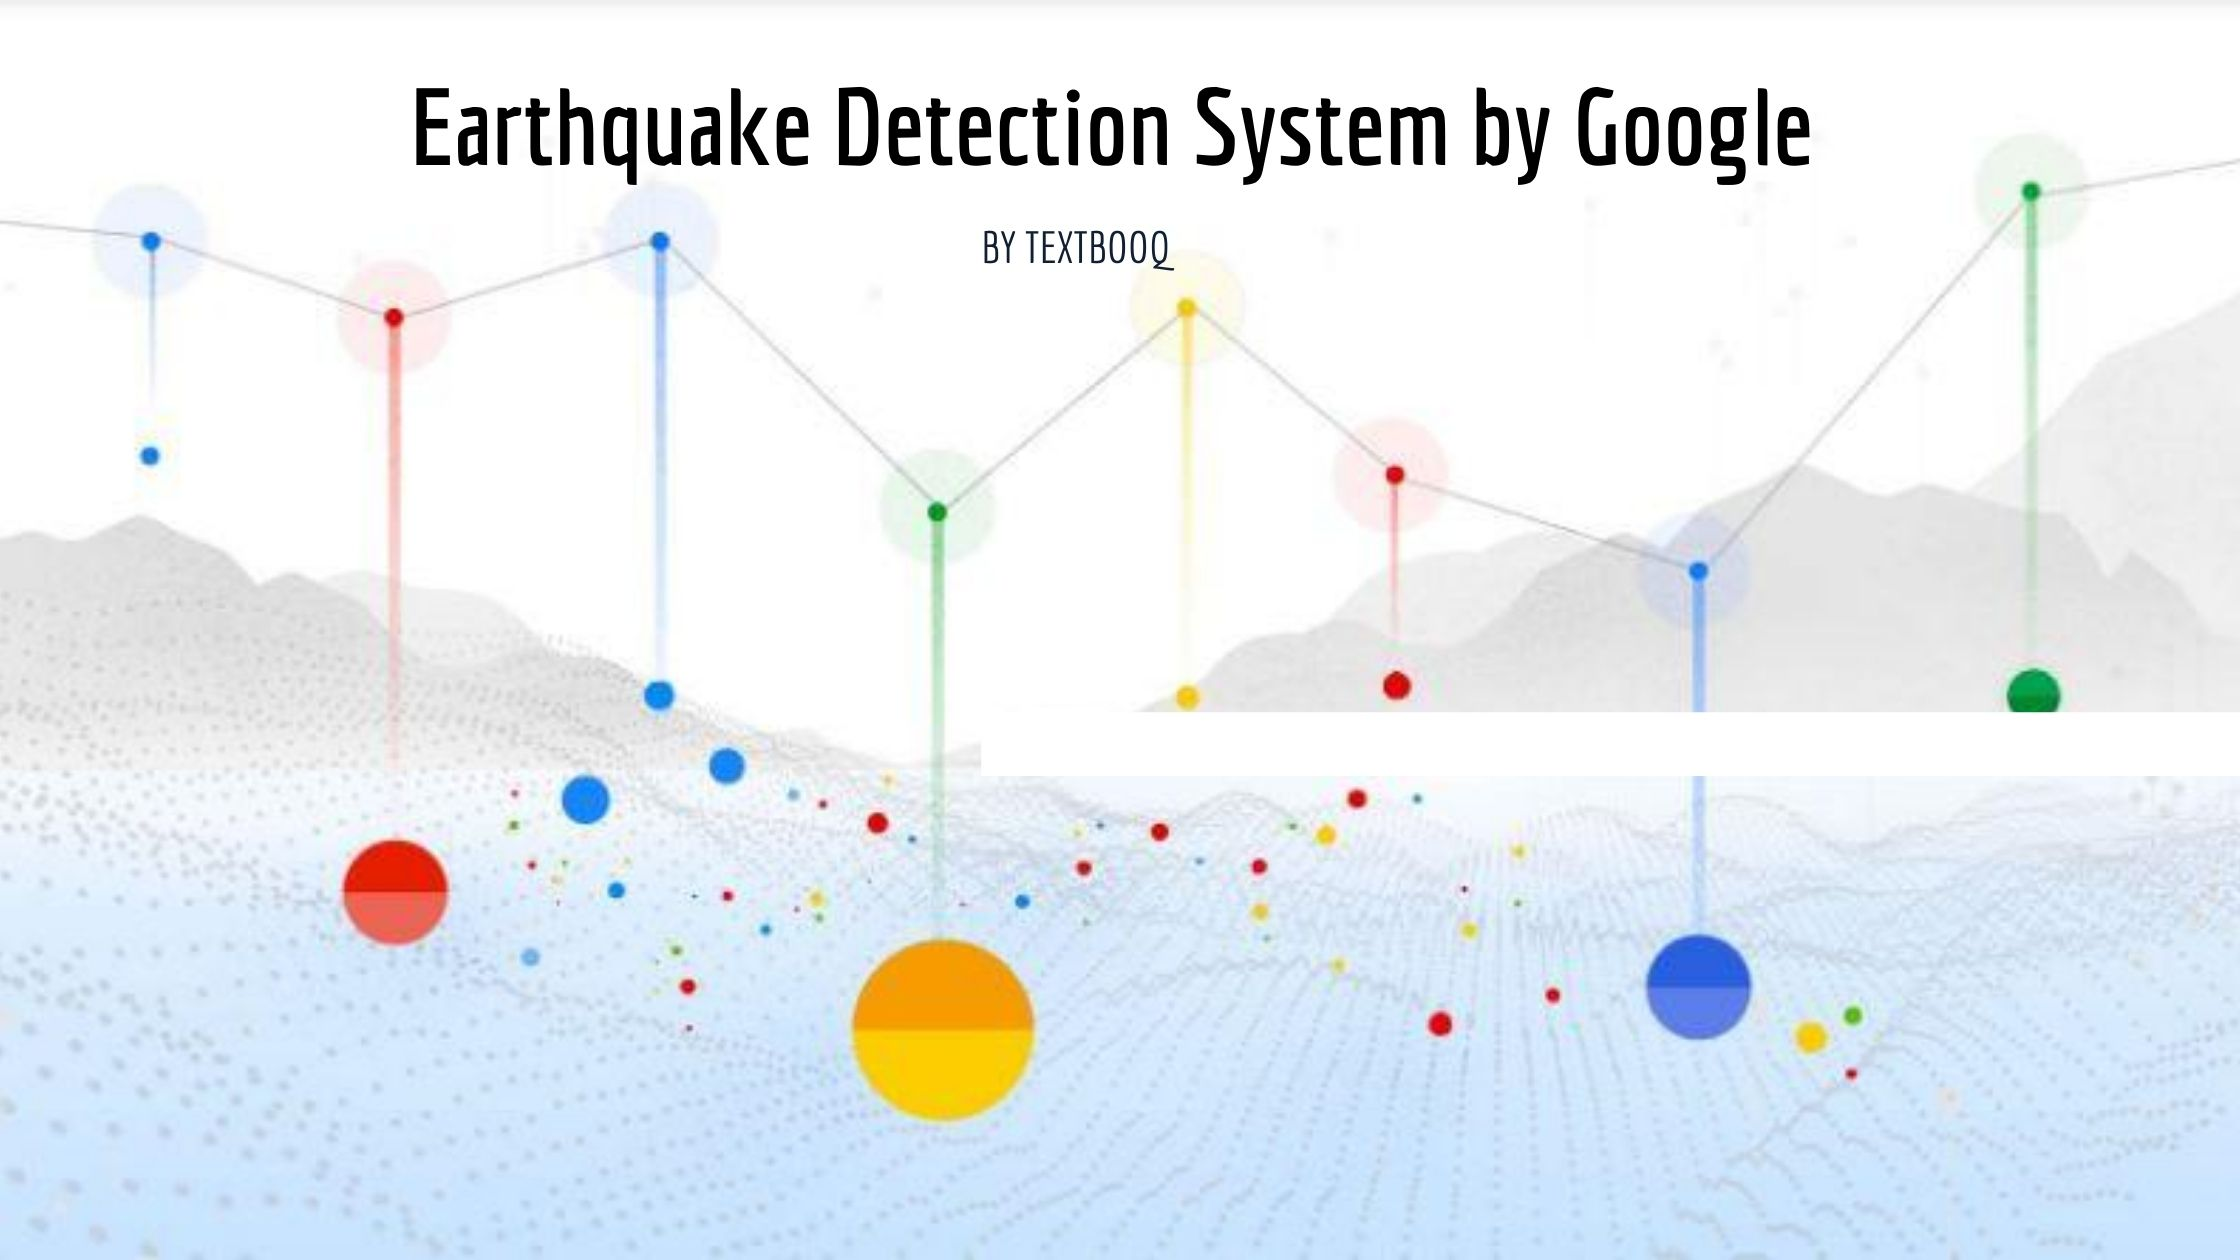 Earthquake Detection System by Google